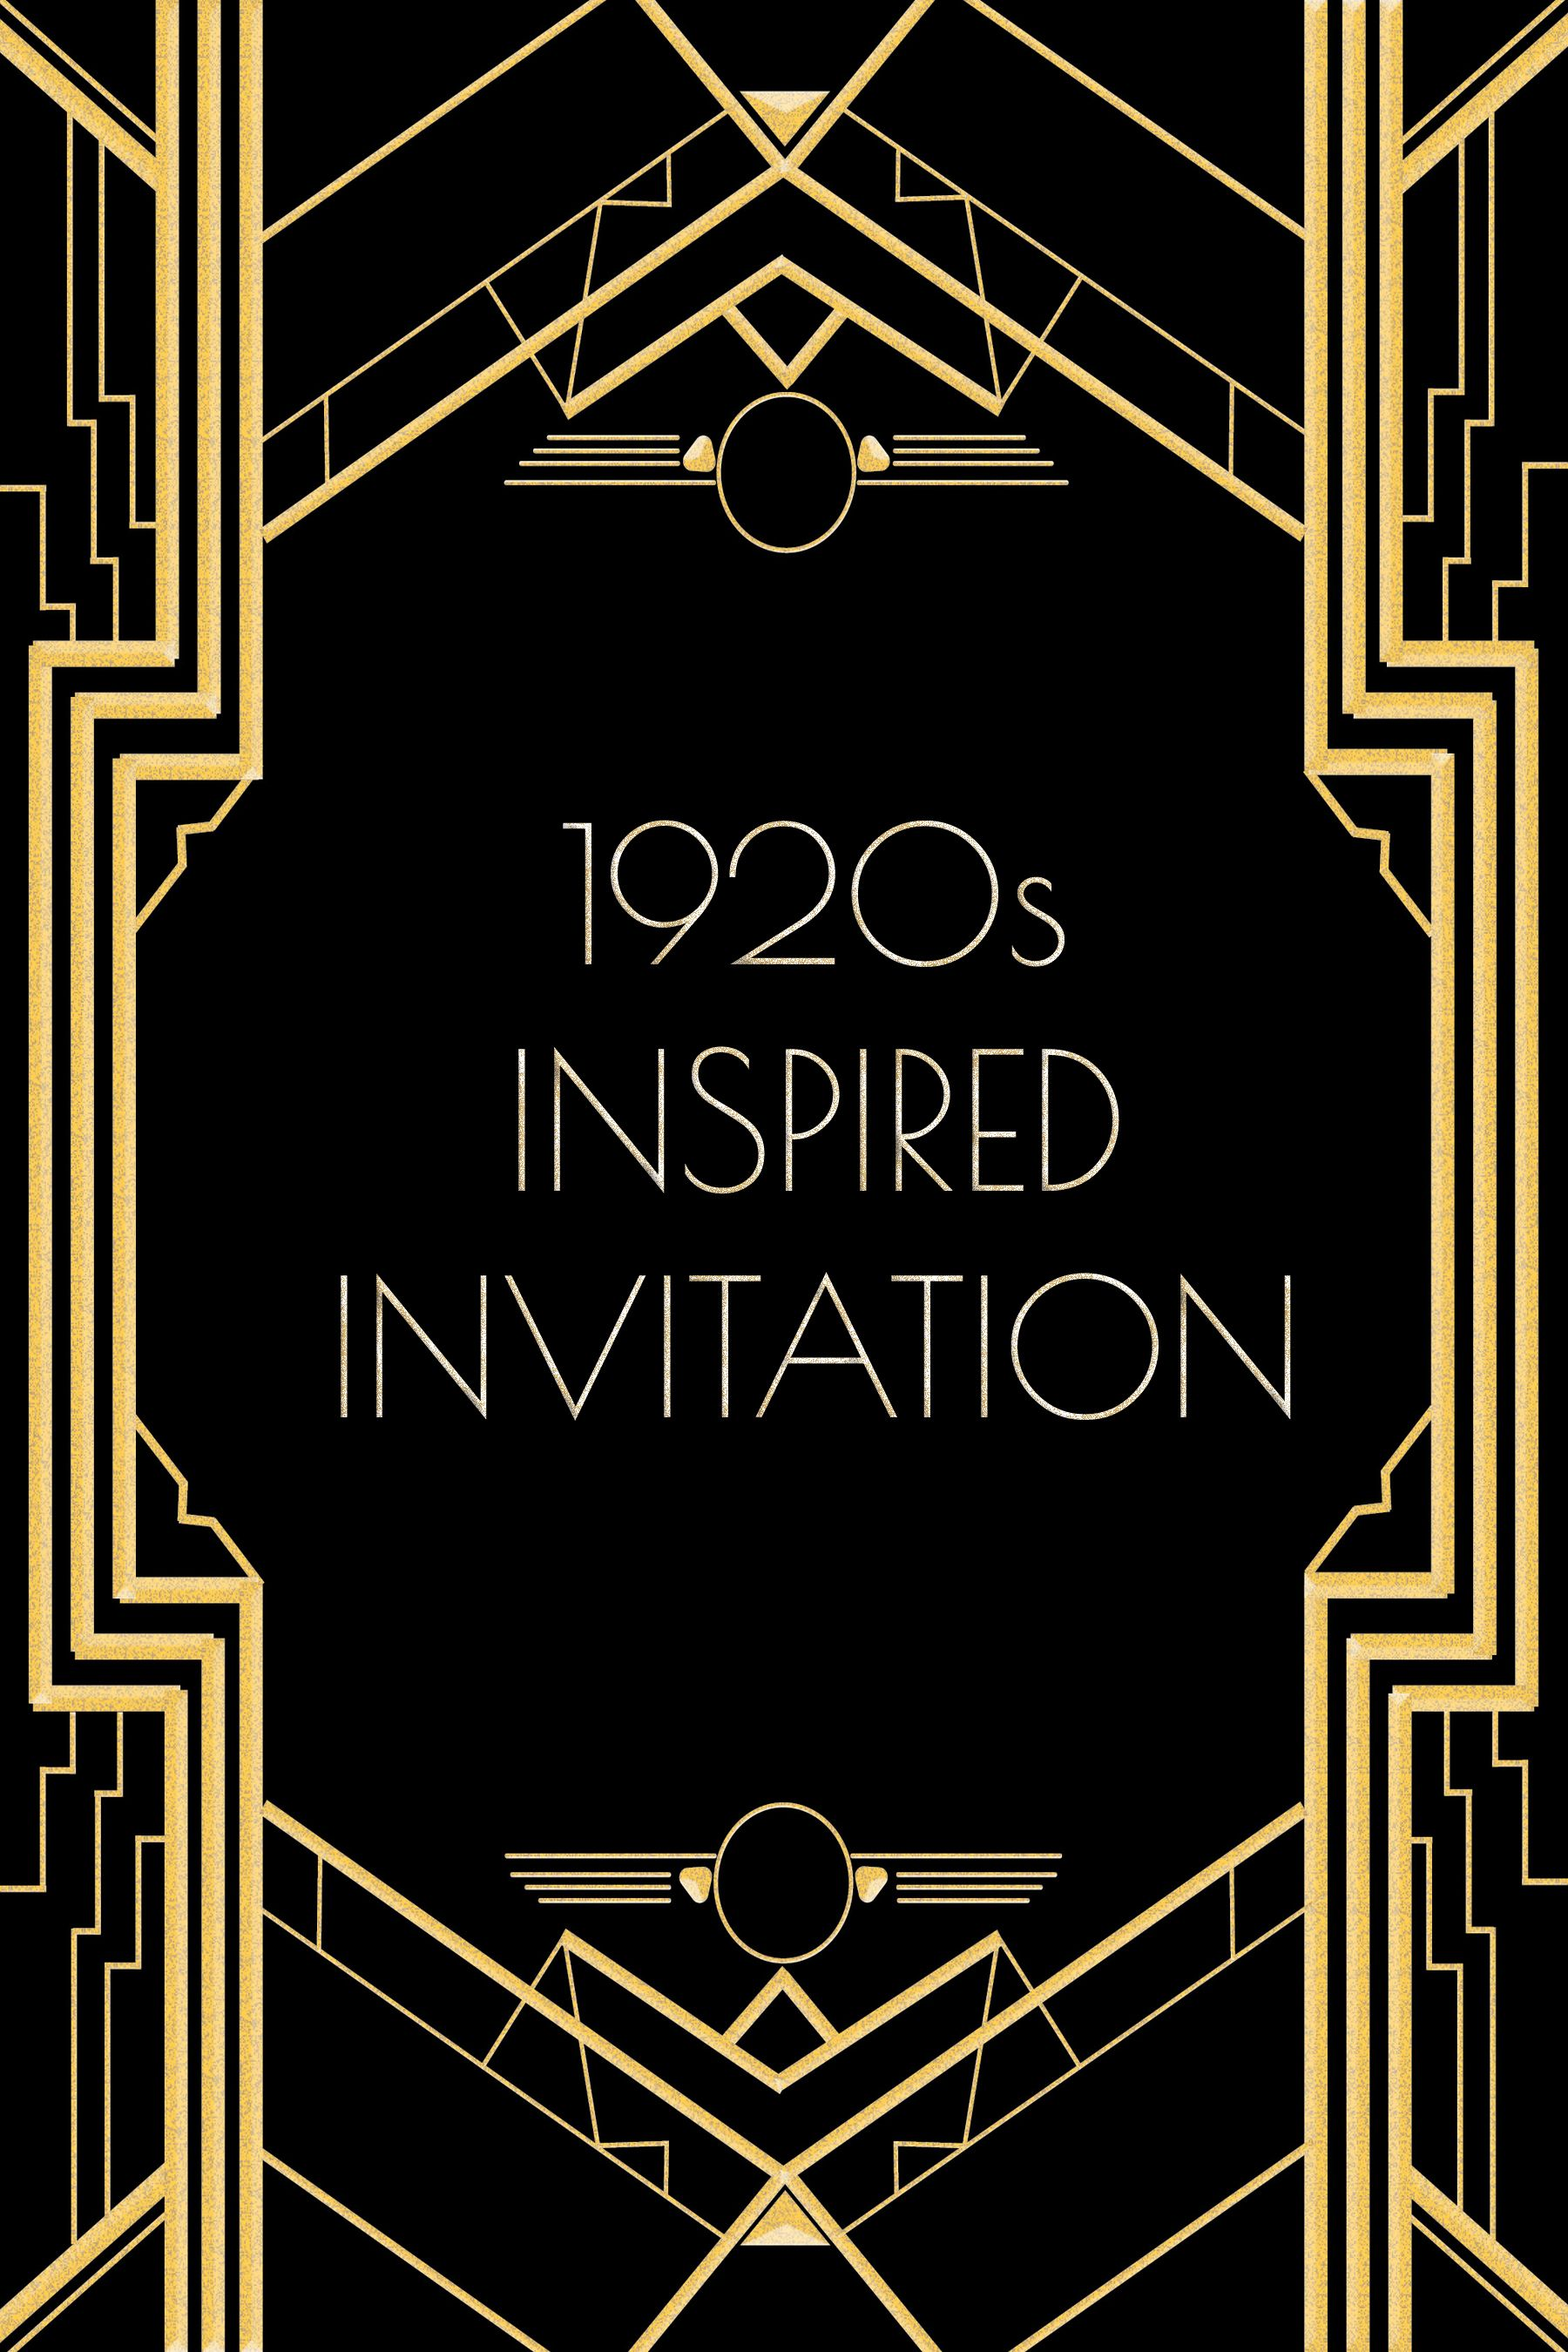 20u0027s Years Cabaret Photos | Use This 1920s Inspired Invitation Template For  A Gatsby .  Corporate Party Invitation Template